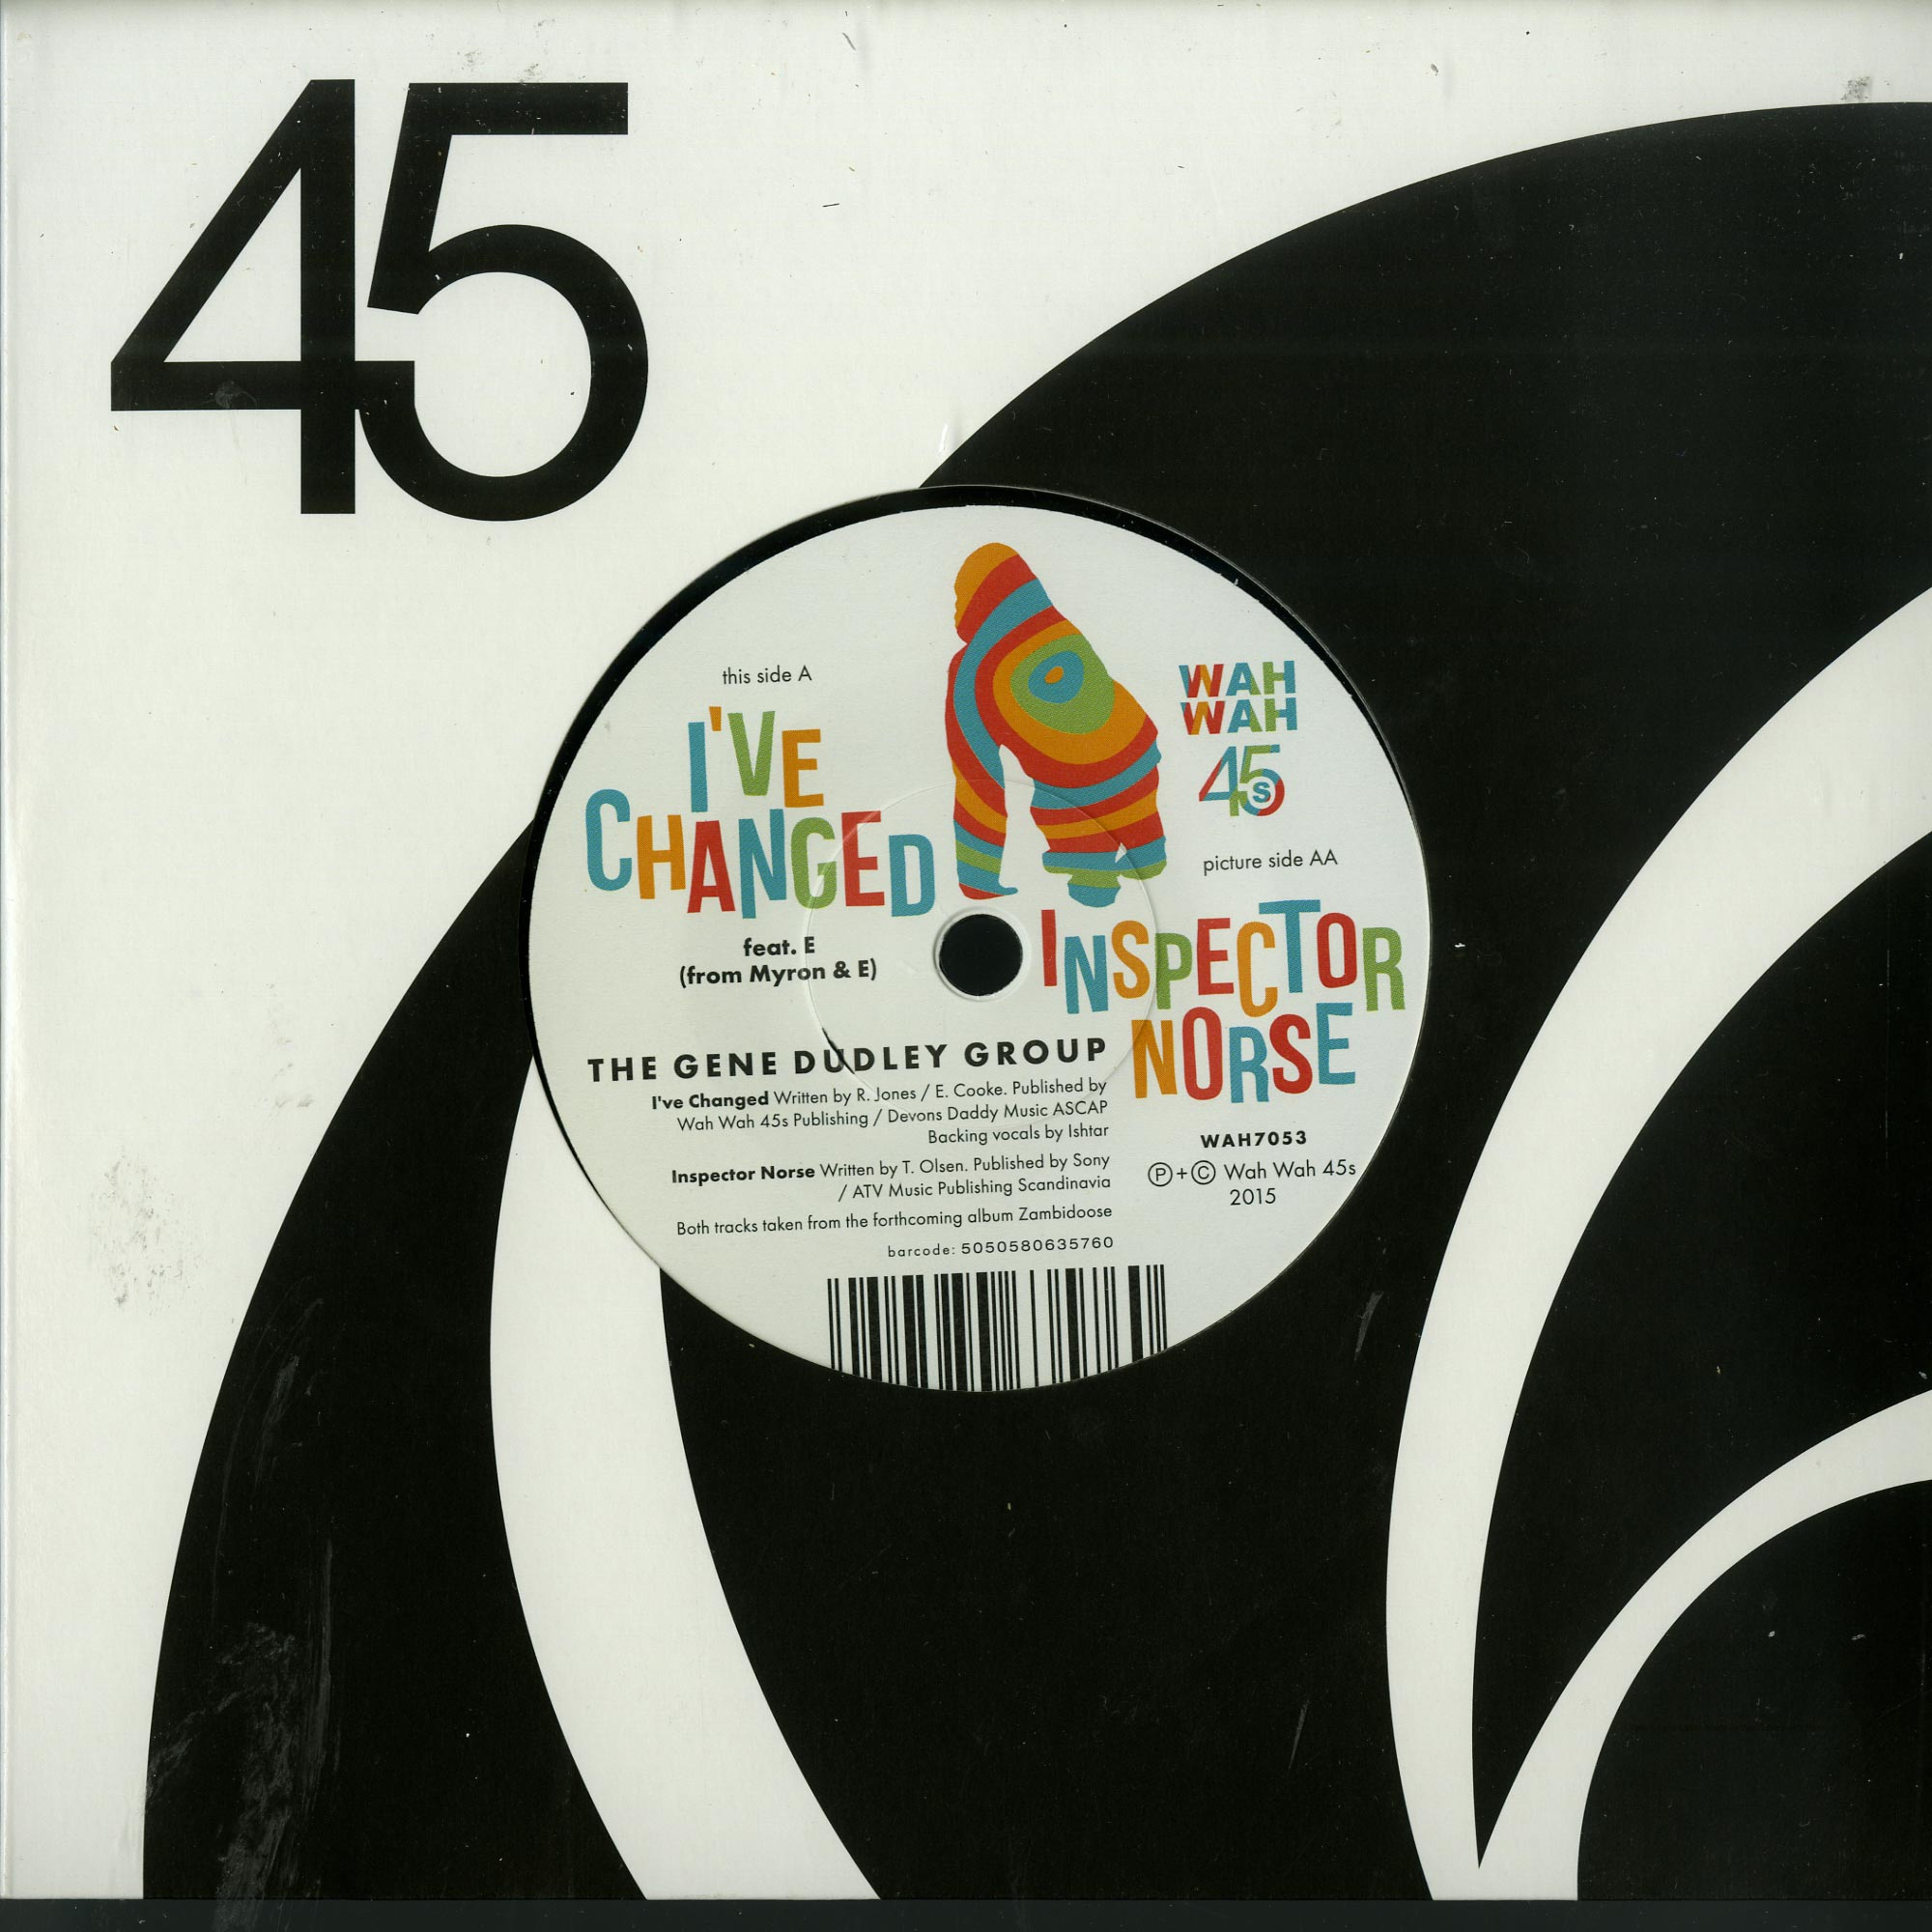 The Gene Dudley Group - I VE CHANGED